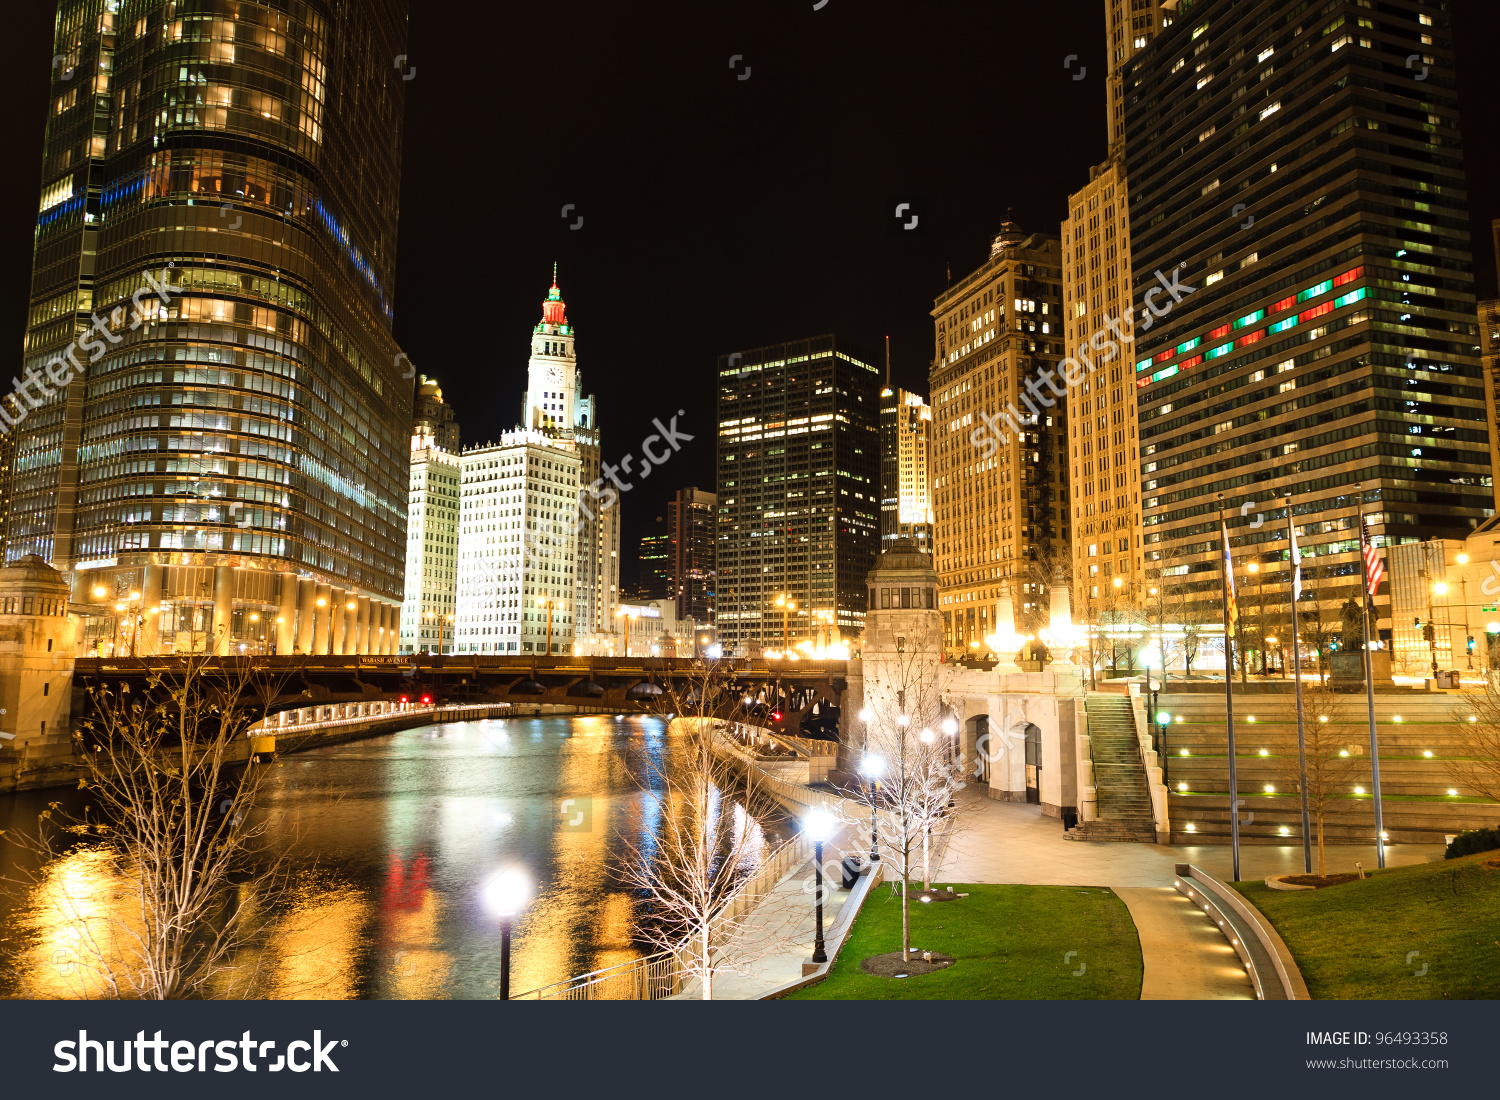 Scenic View On Chicago River Night Stock Photo 96493358.